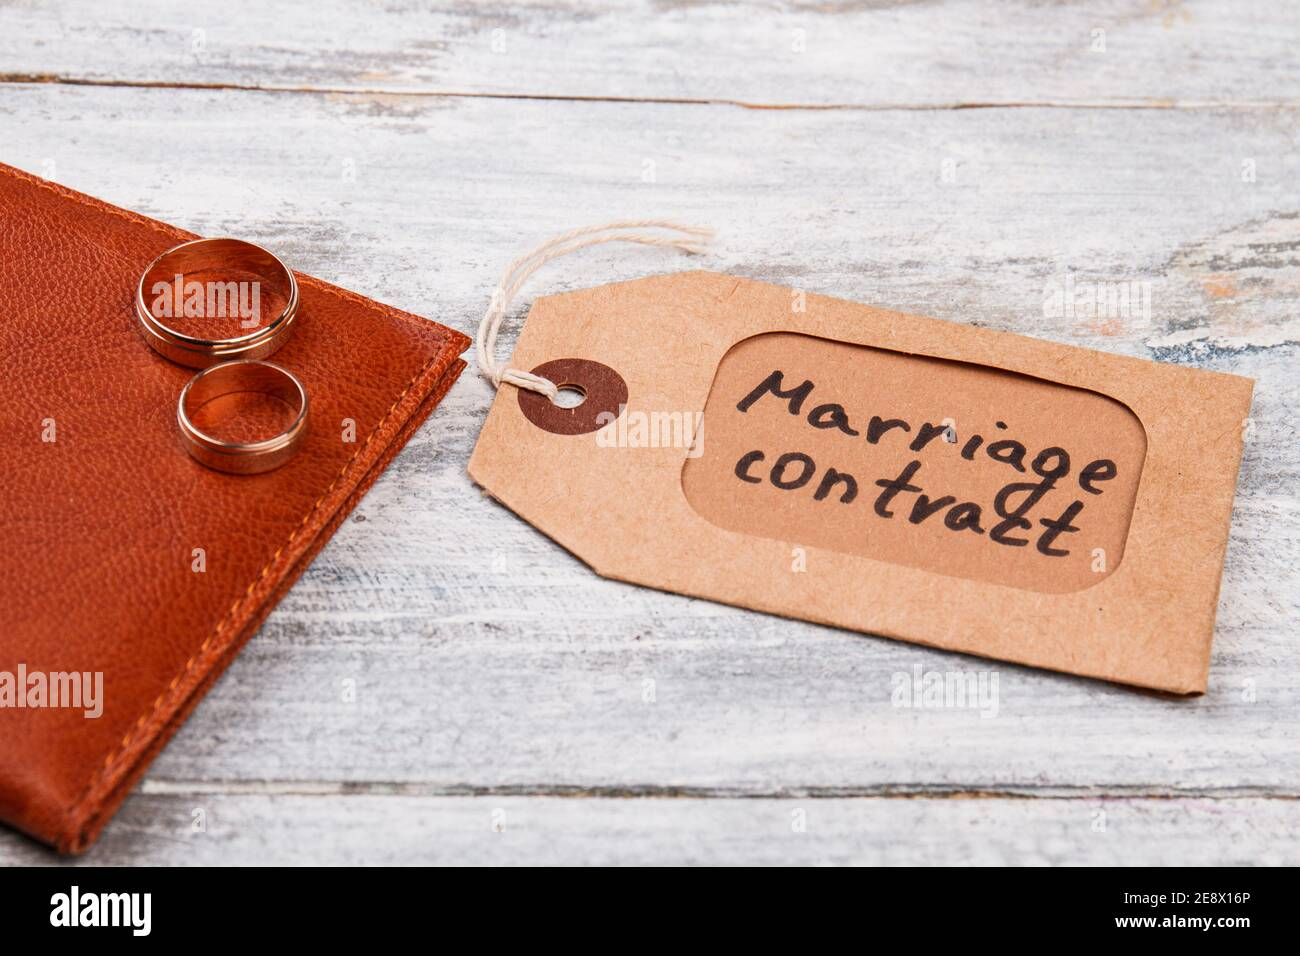 Marriage contract label. Stock Photo